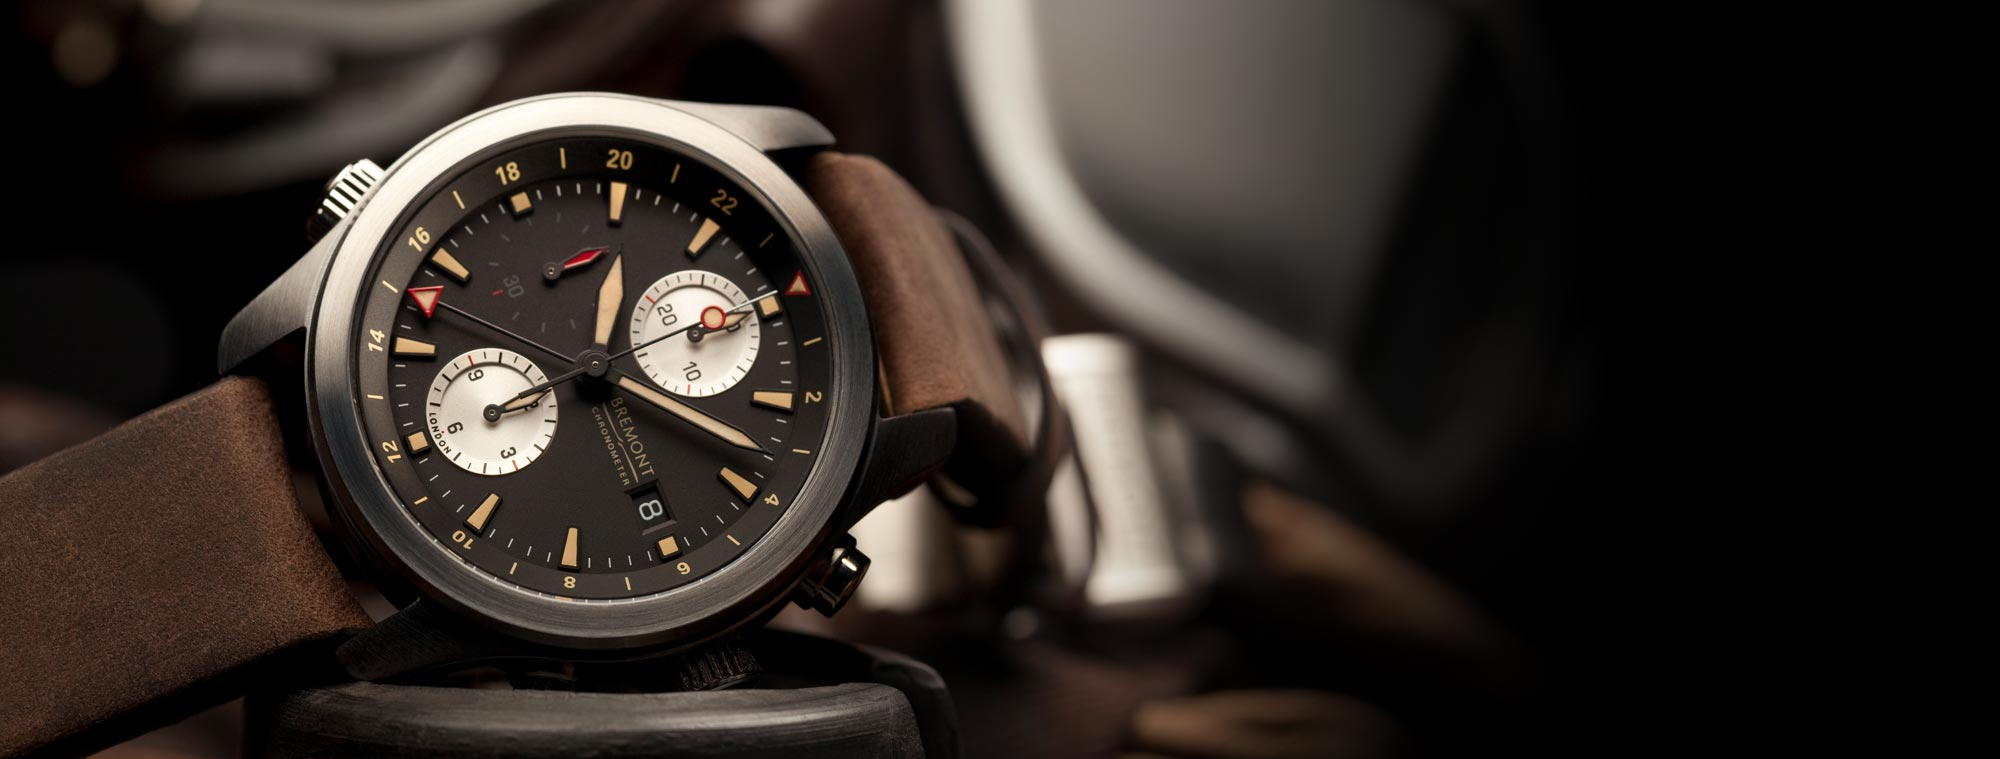 d278dda124 British Luxury Watches Bremont Chronometers — Bremont Watch Company